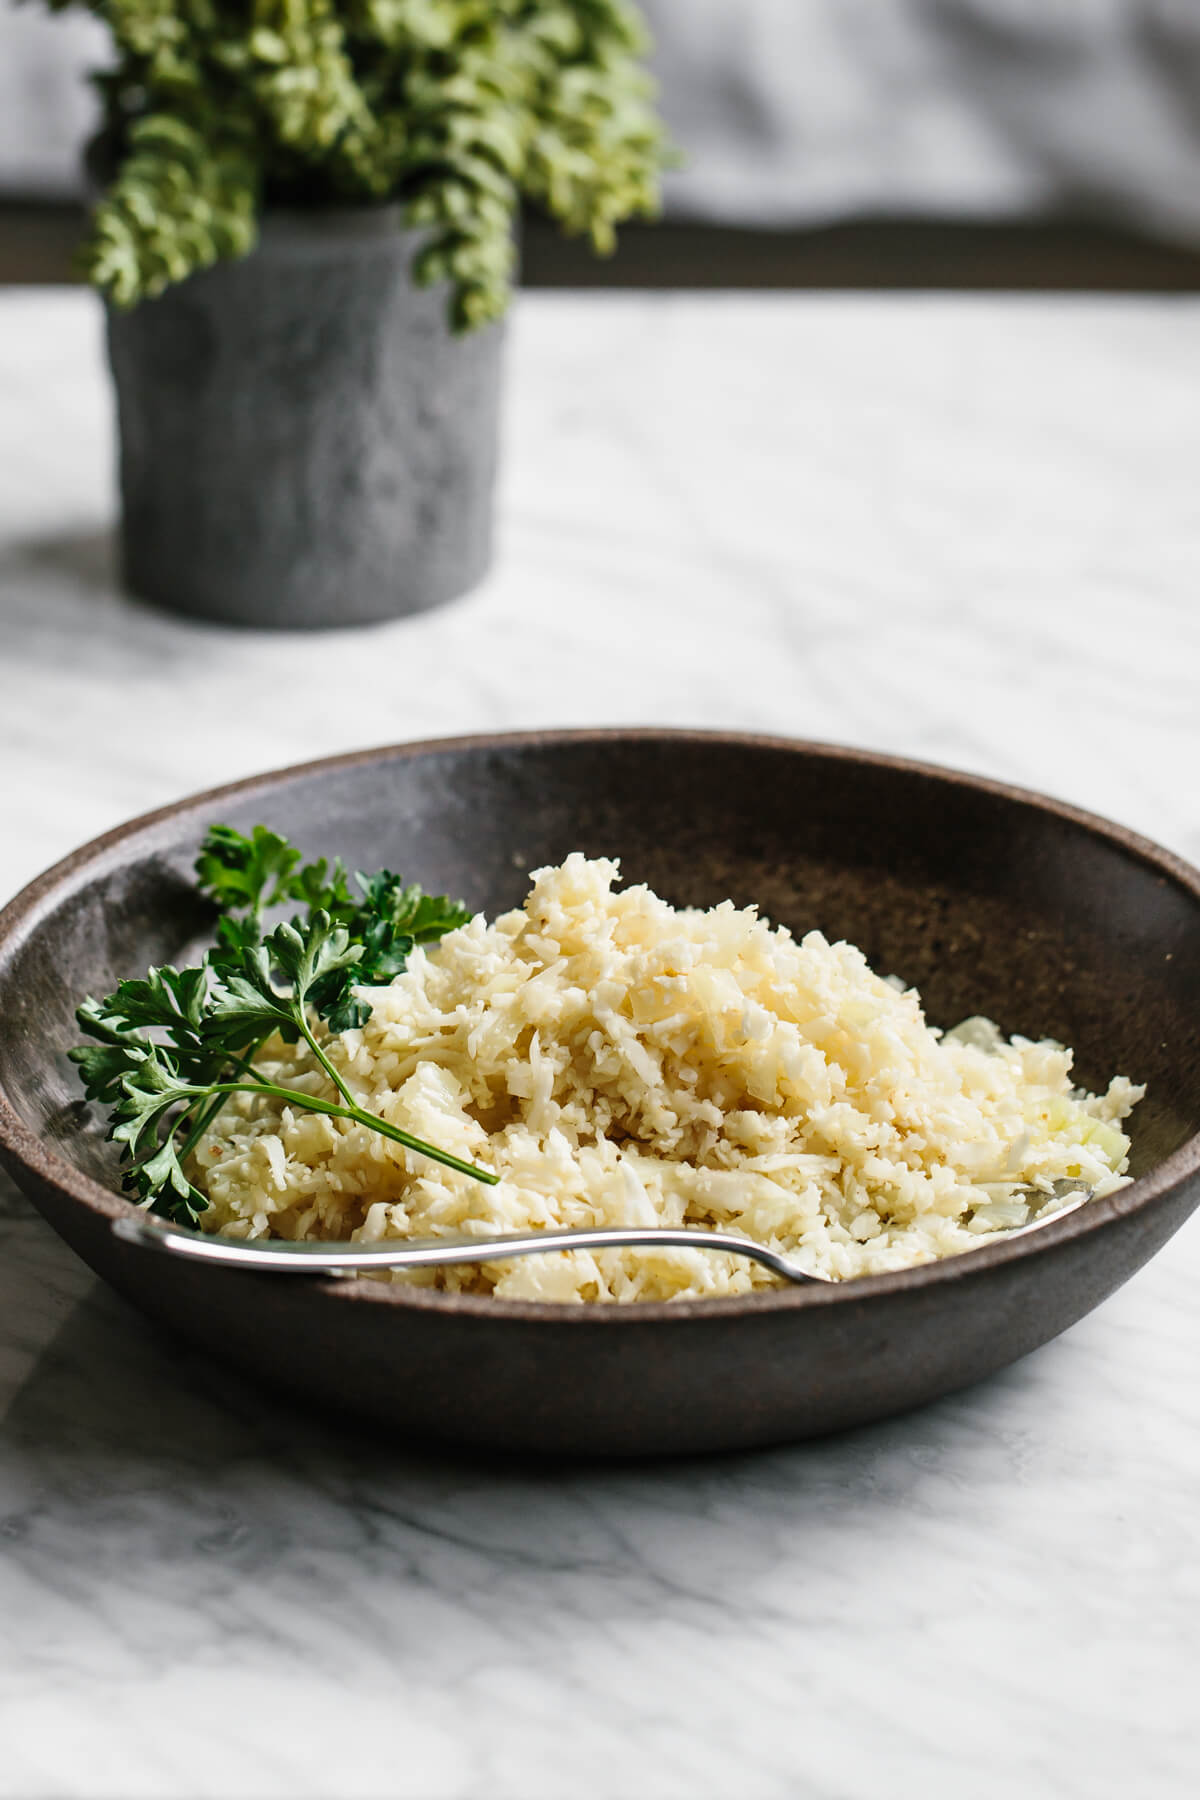 Cauliflower rice in a bowl with herbs.